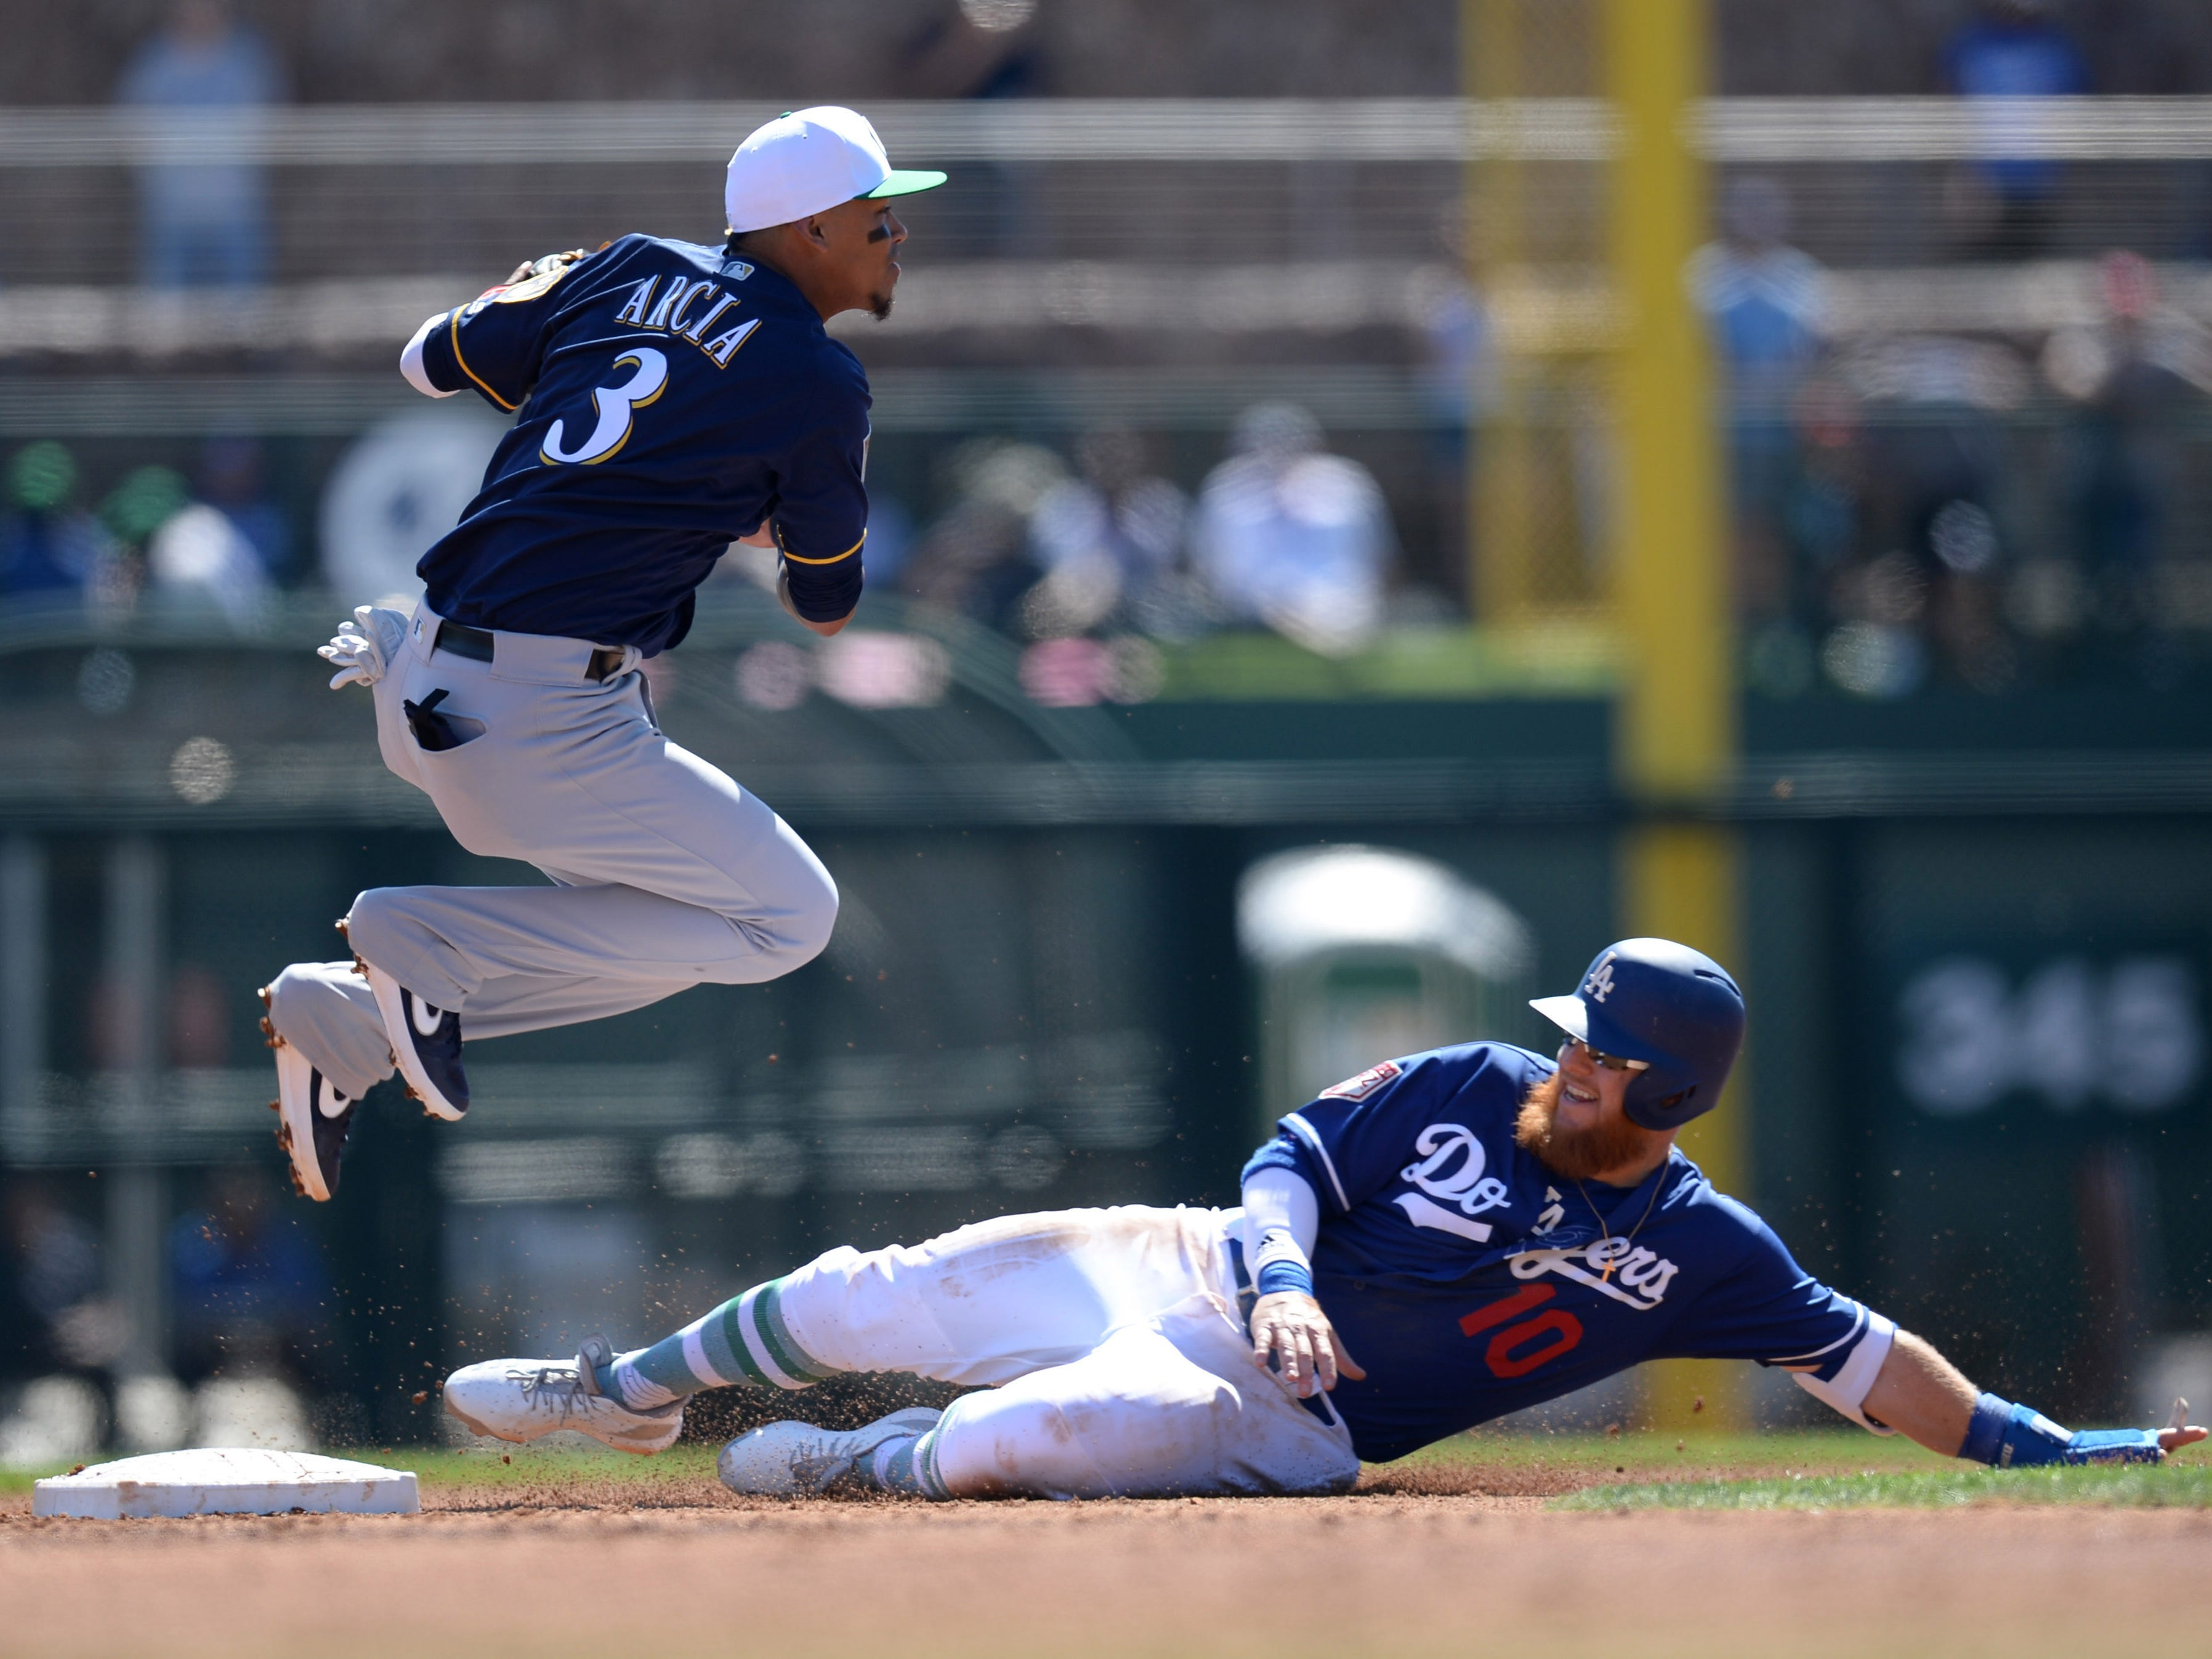 After throwing to first to complete a double play, Brewers shortstop Orlando Arcia  jumps to avoid a sliding Justin Turner of the Dodgers in the second inning.